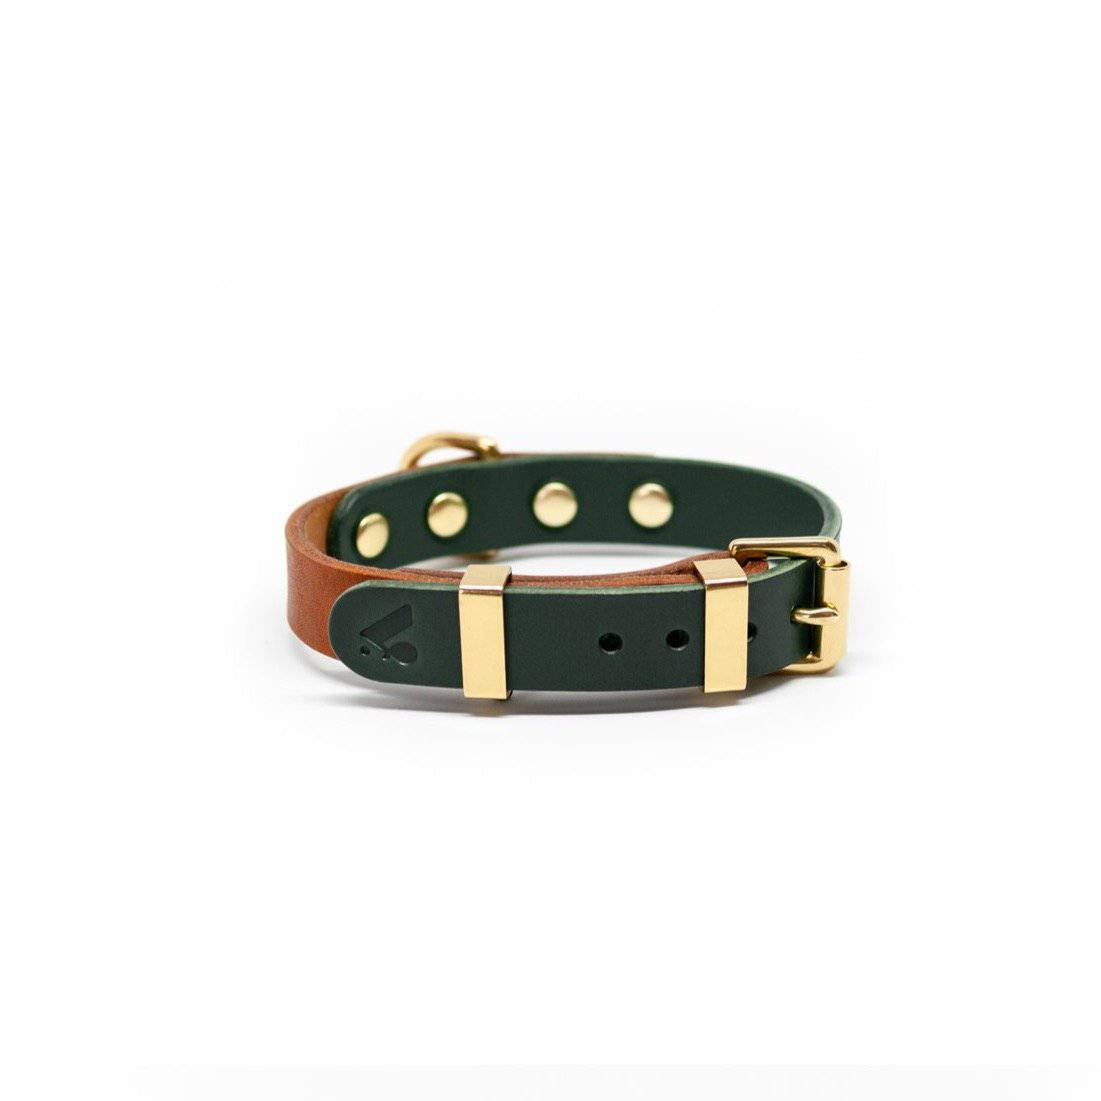 Caramel & Green Duotone Leather Collar + Brass Hardware - Holler Brighton